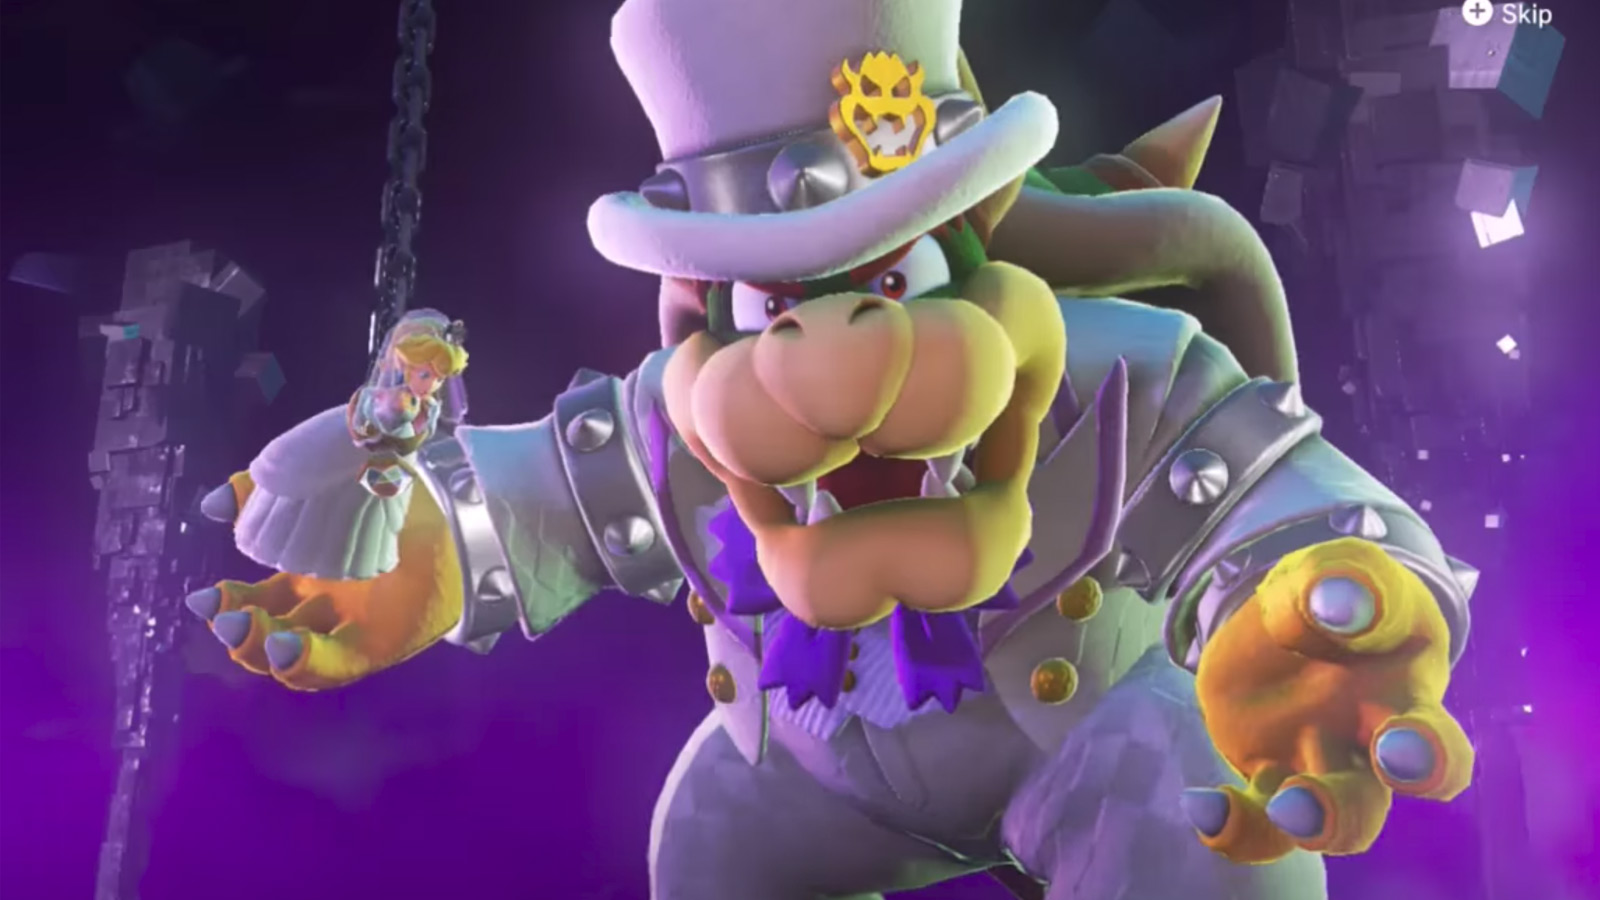 Sell My Car For Cash >> Watch Bowser deride Mario's choice of wedding attire in ...